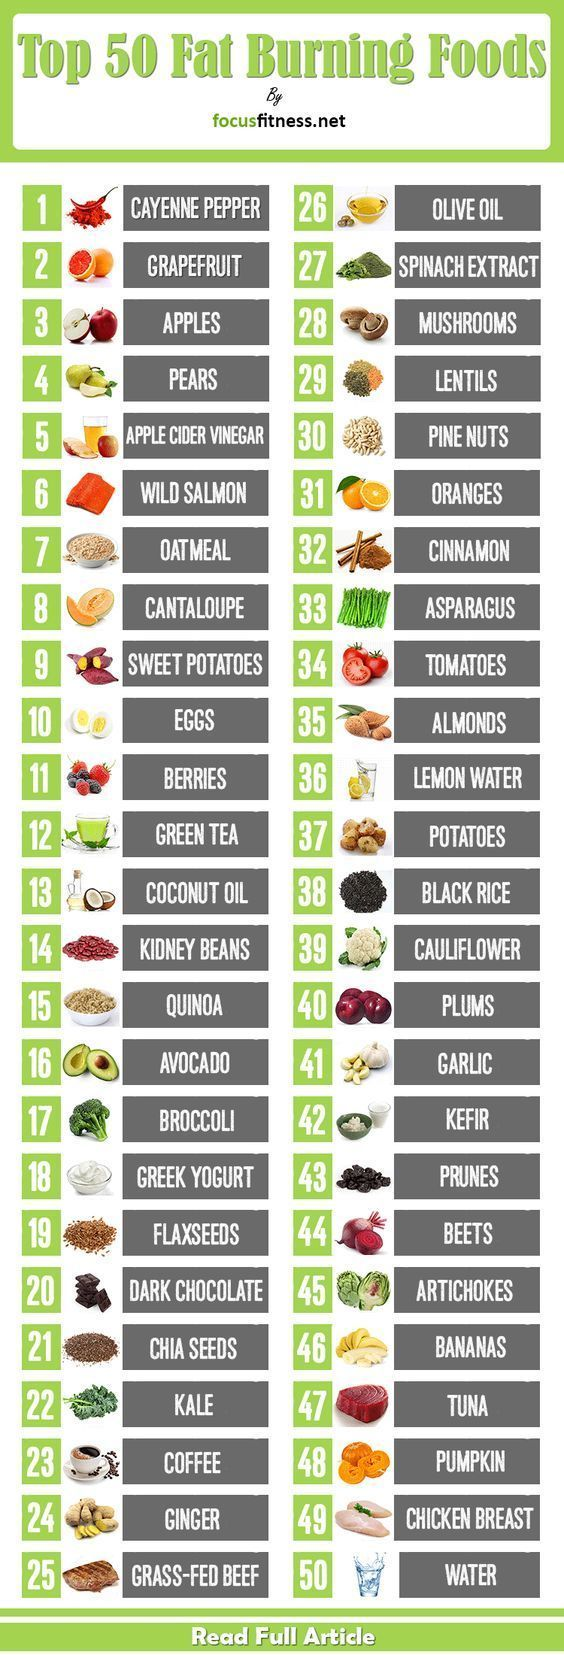 How much weight will you lose if you eat nothing but fruit image 3